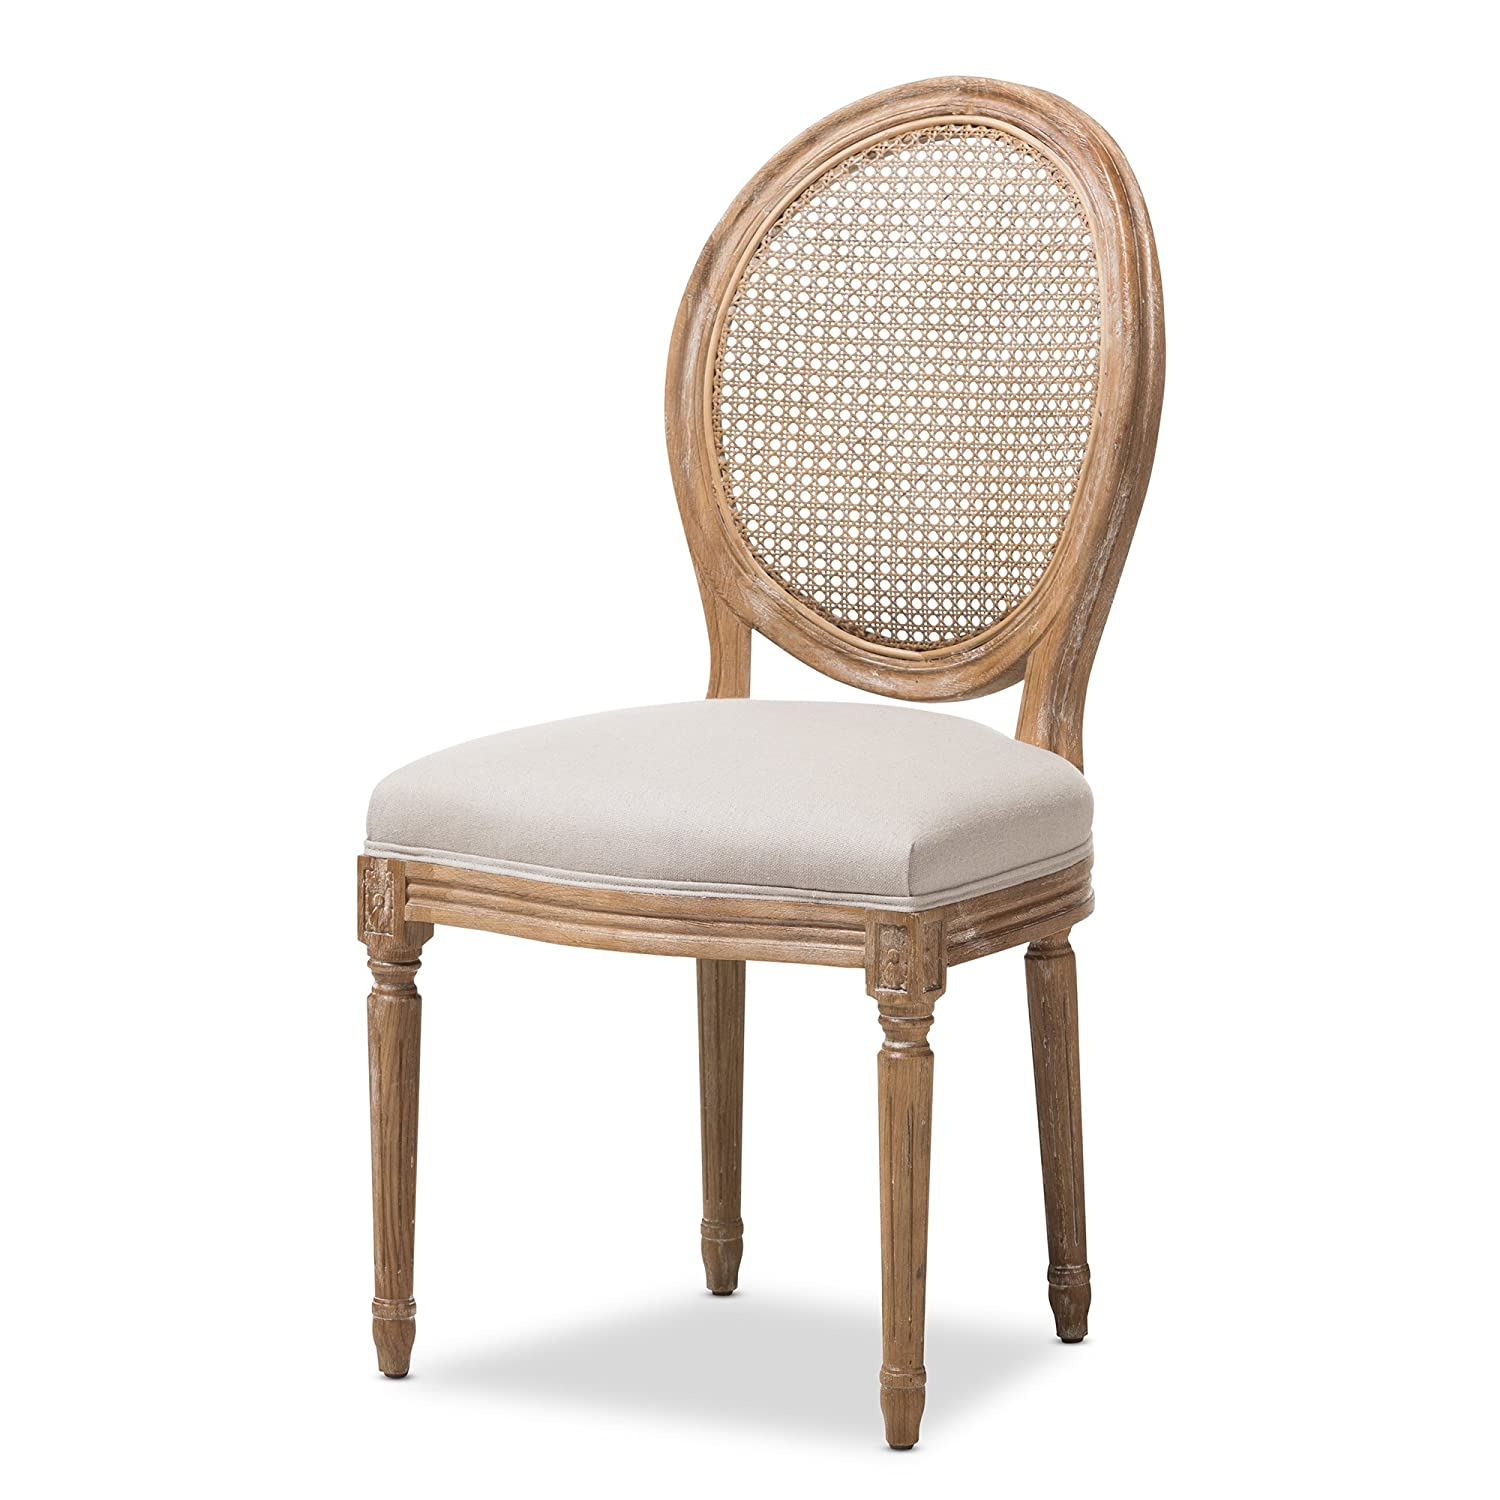 Amazon.com   Baxton Studio Darleneweathered Oak Round Cane Back Beige  Fabric Upholstered Dining Side Chair   Chairs